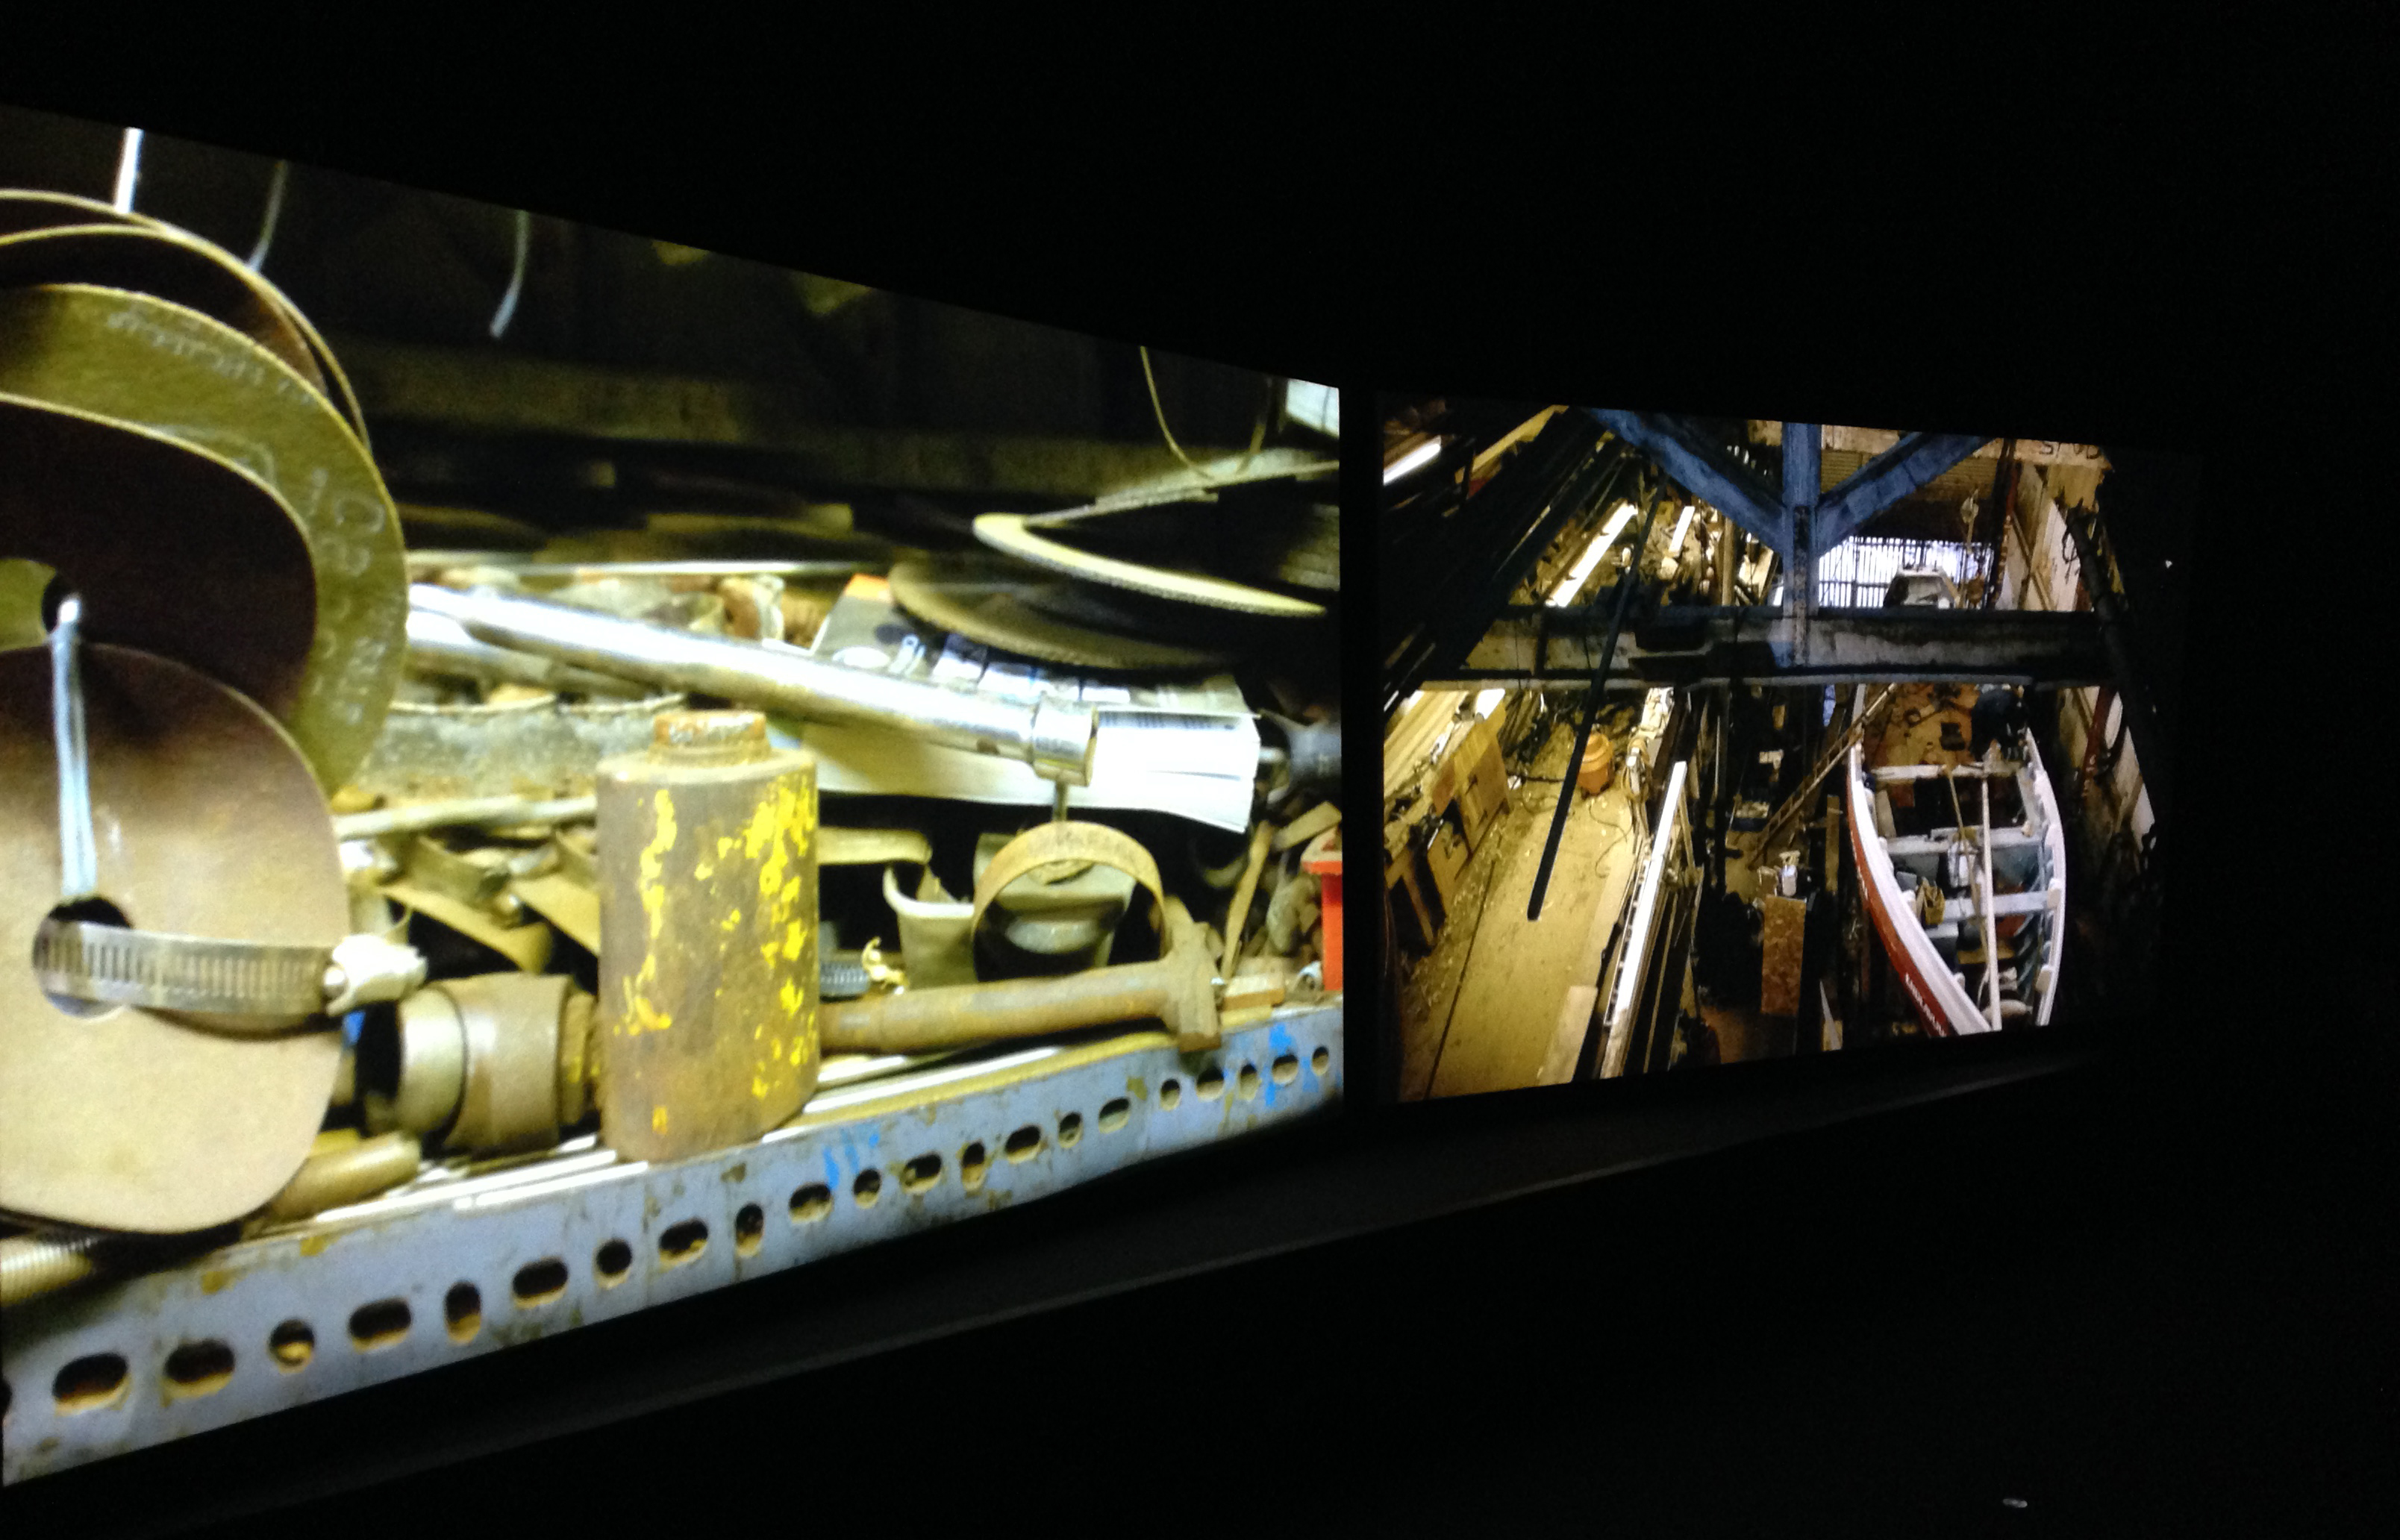 Mikhail Karikis, The Endeavour (2015), two-channel & stereo sound installation at The Gallery, Tyneside Cinema, Newcastle, UK